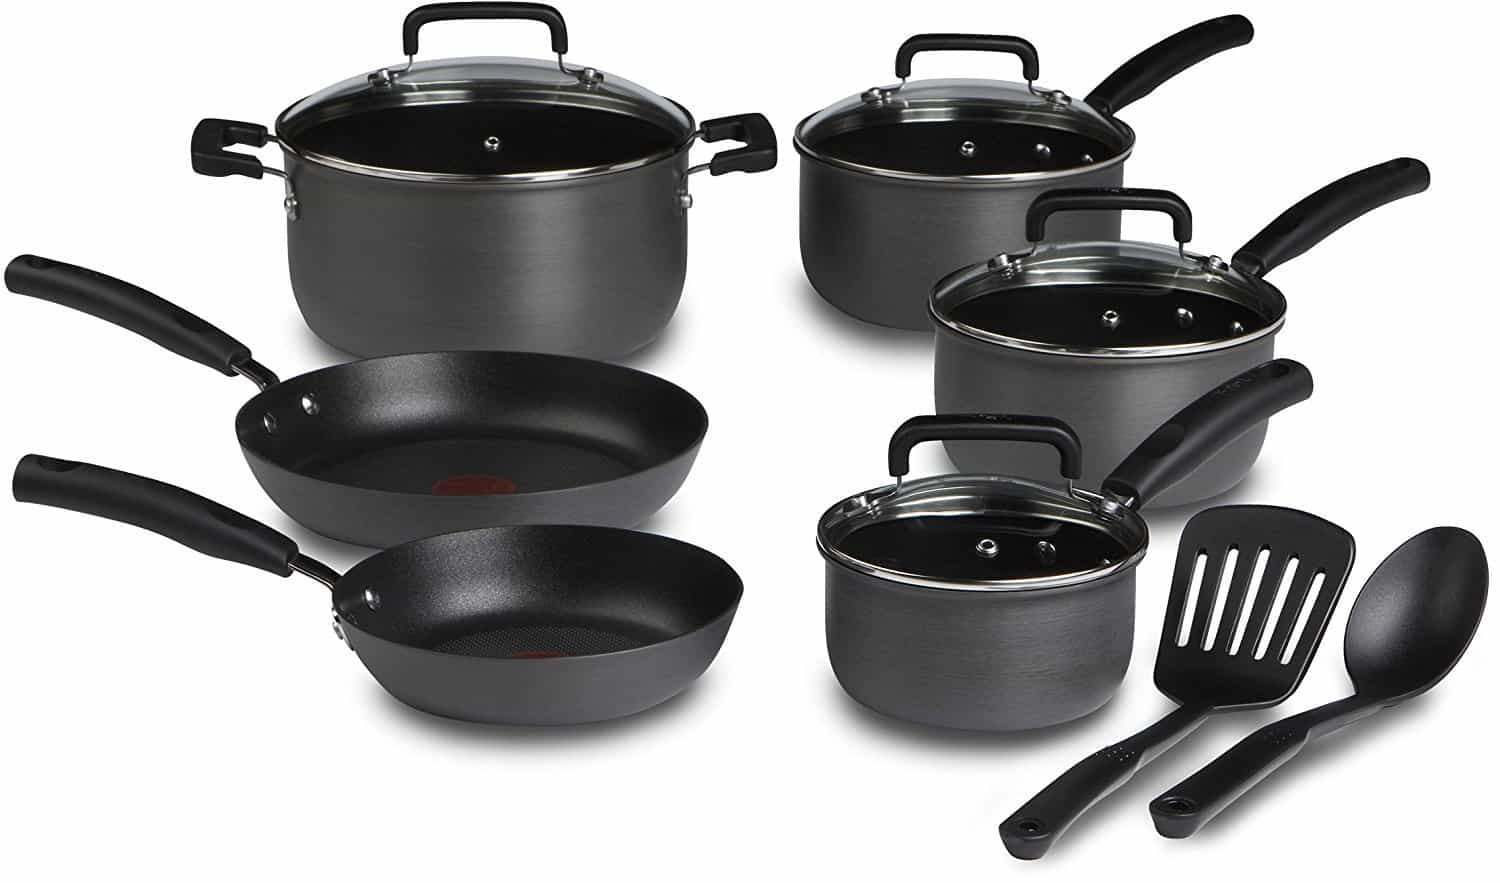 T-fal 12 Piece Stainless Steel Cookware Set Review 1